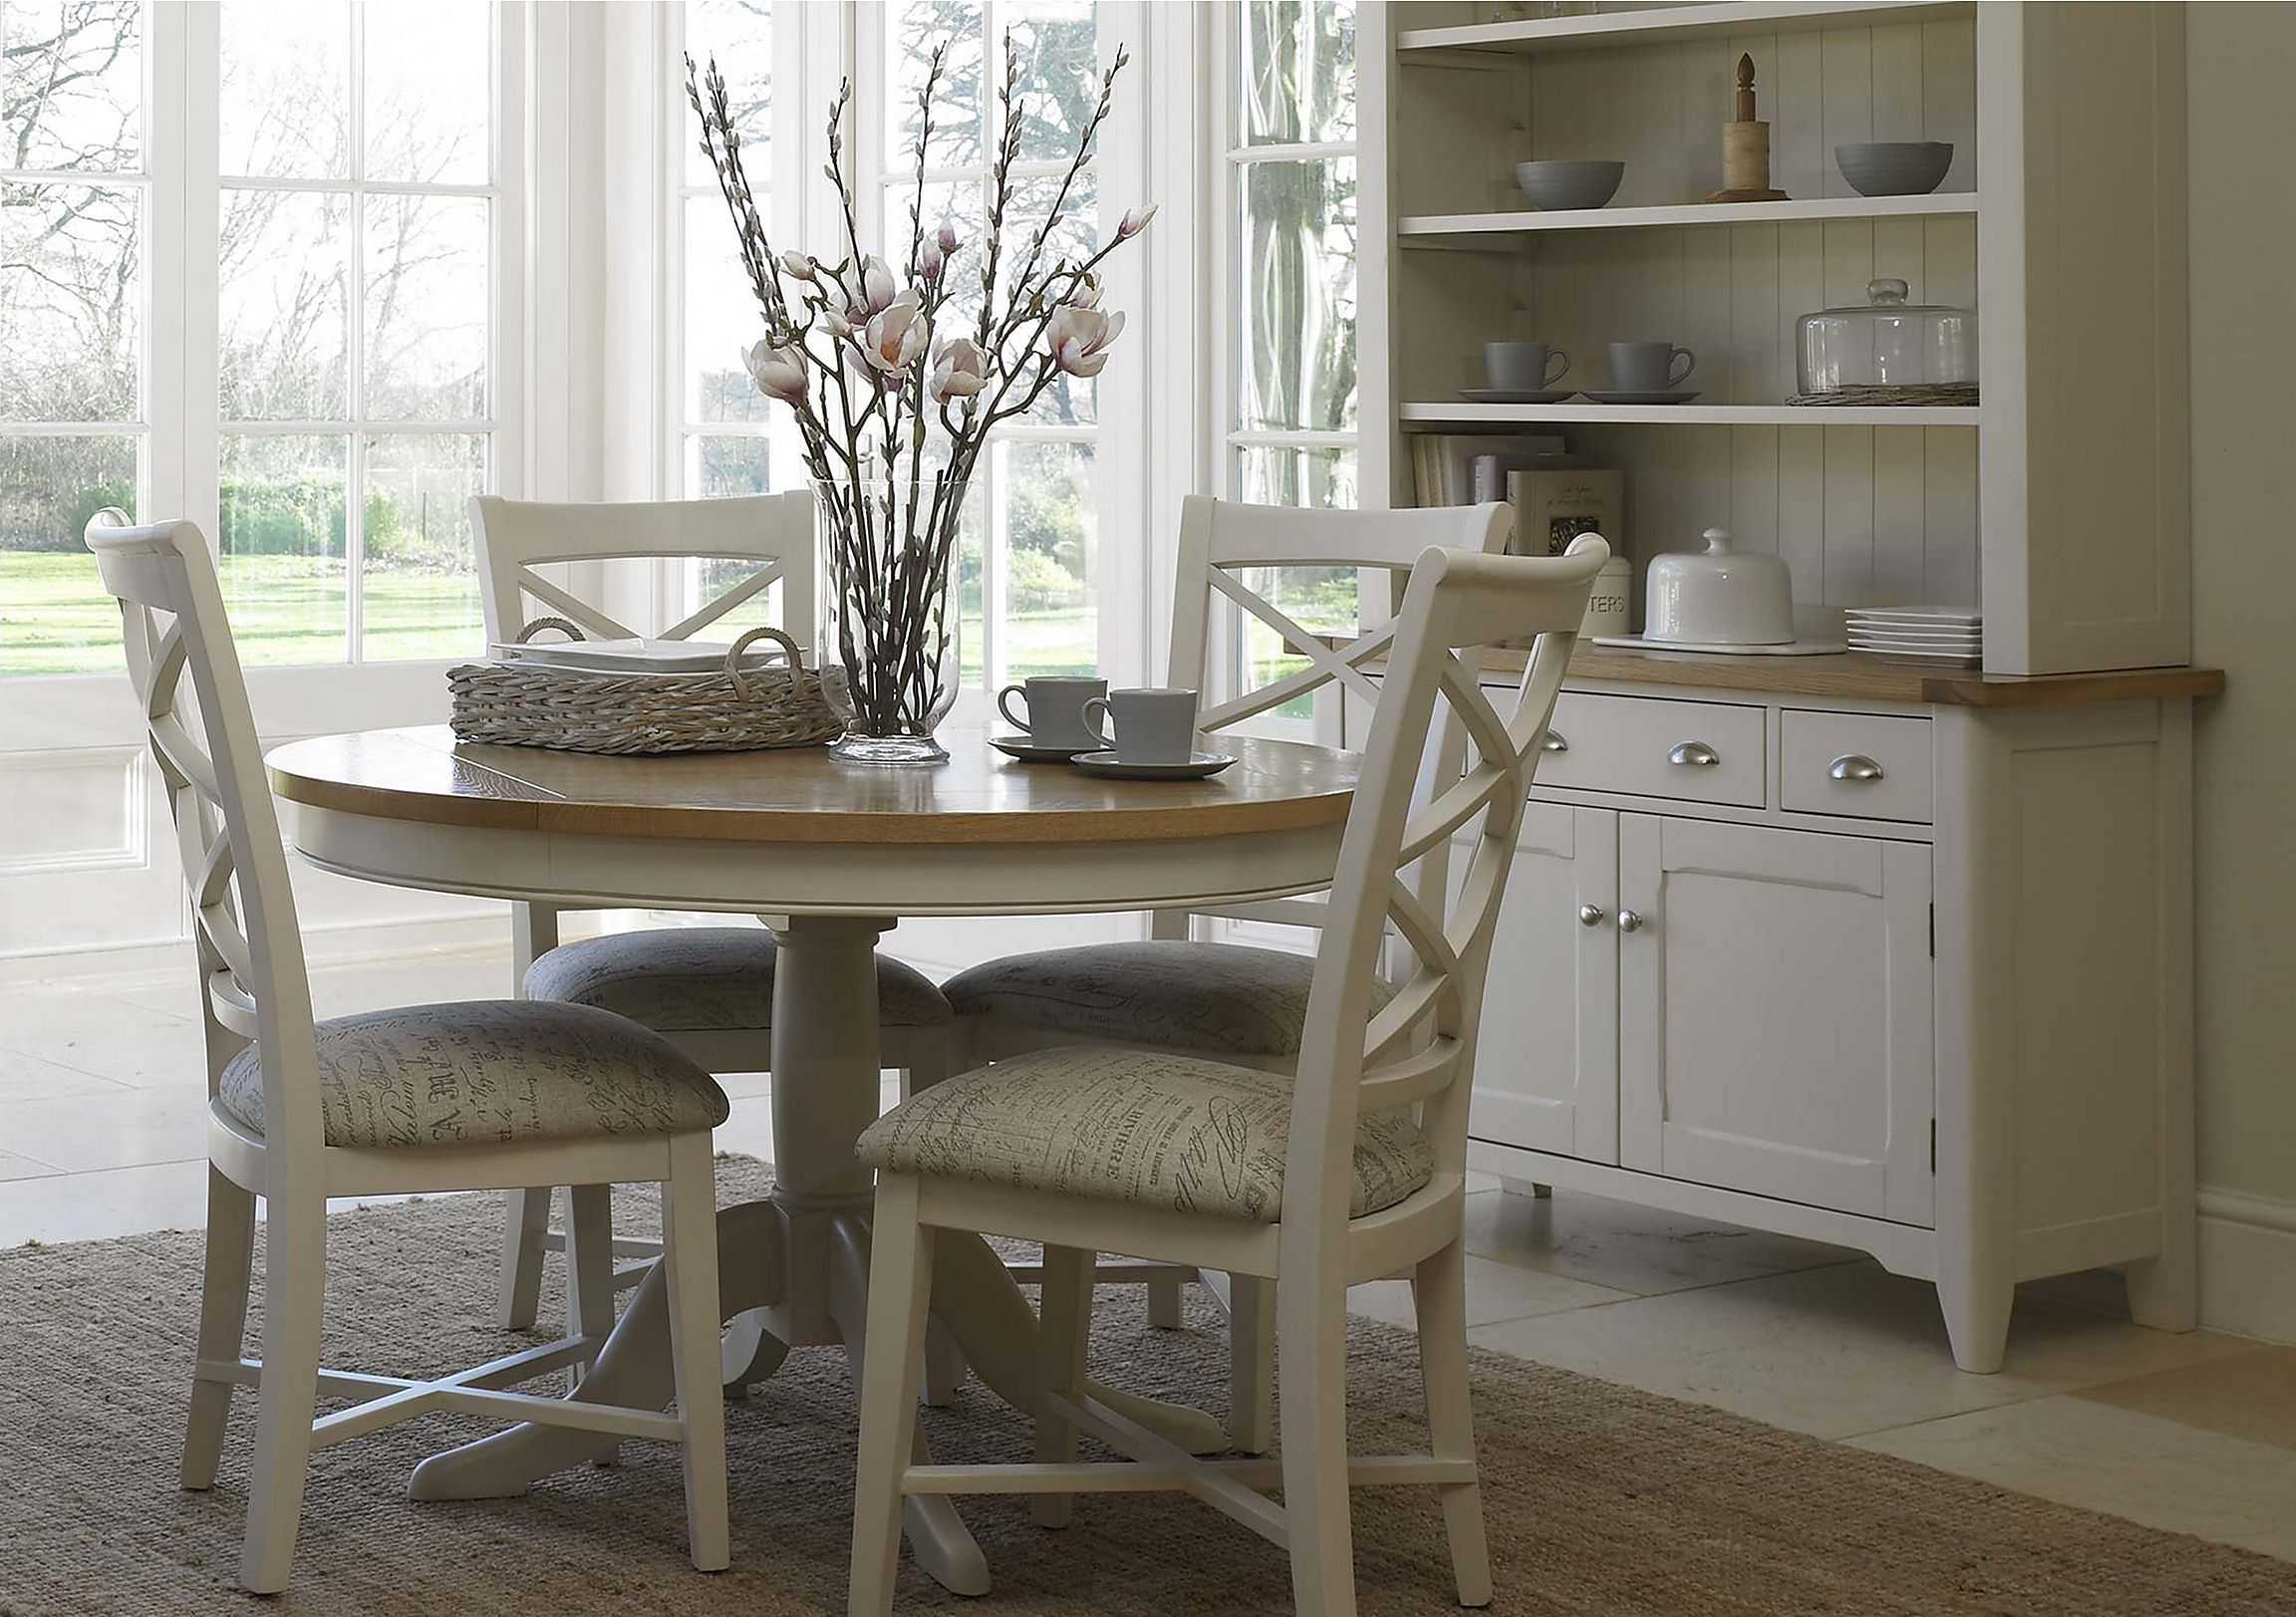 Arles Round Extending Dining Table   Kitchen table settings, Round ...